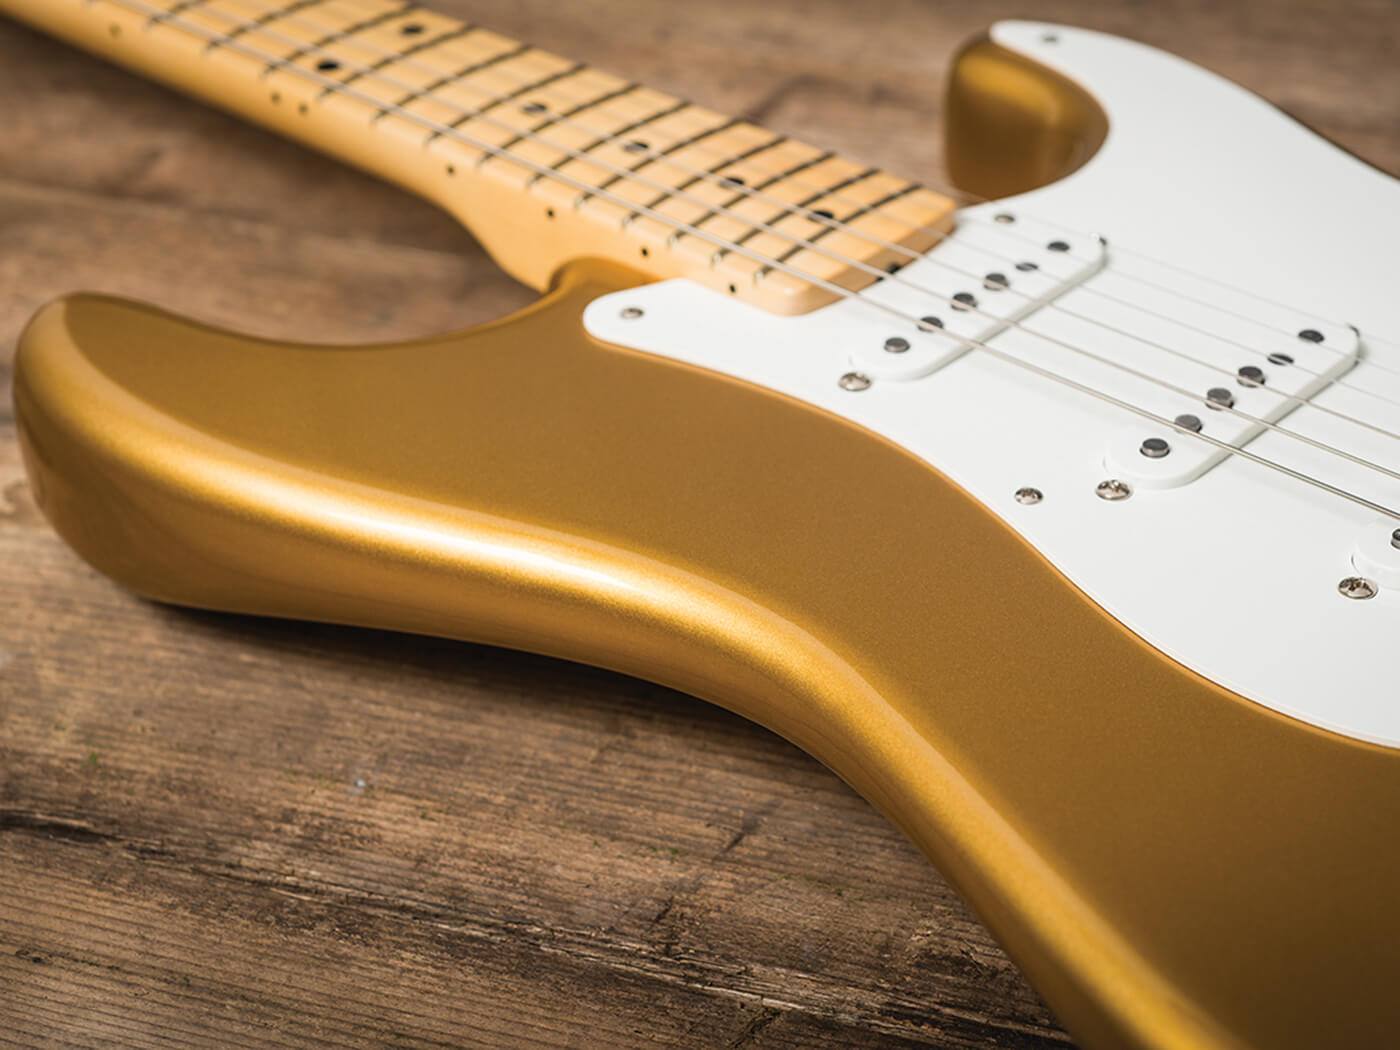 Stratocaster Guide Which Strat To Buy Model Comparison Fender >> 10 Best Strat Style Electric Guitars